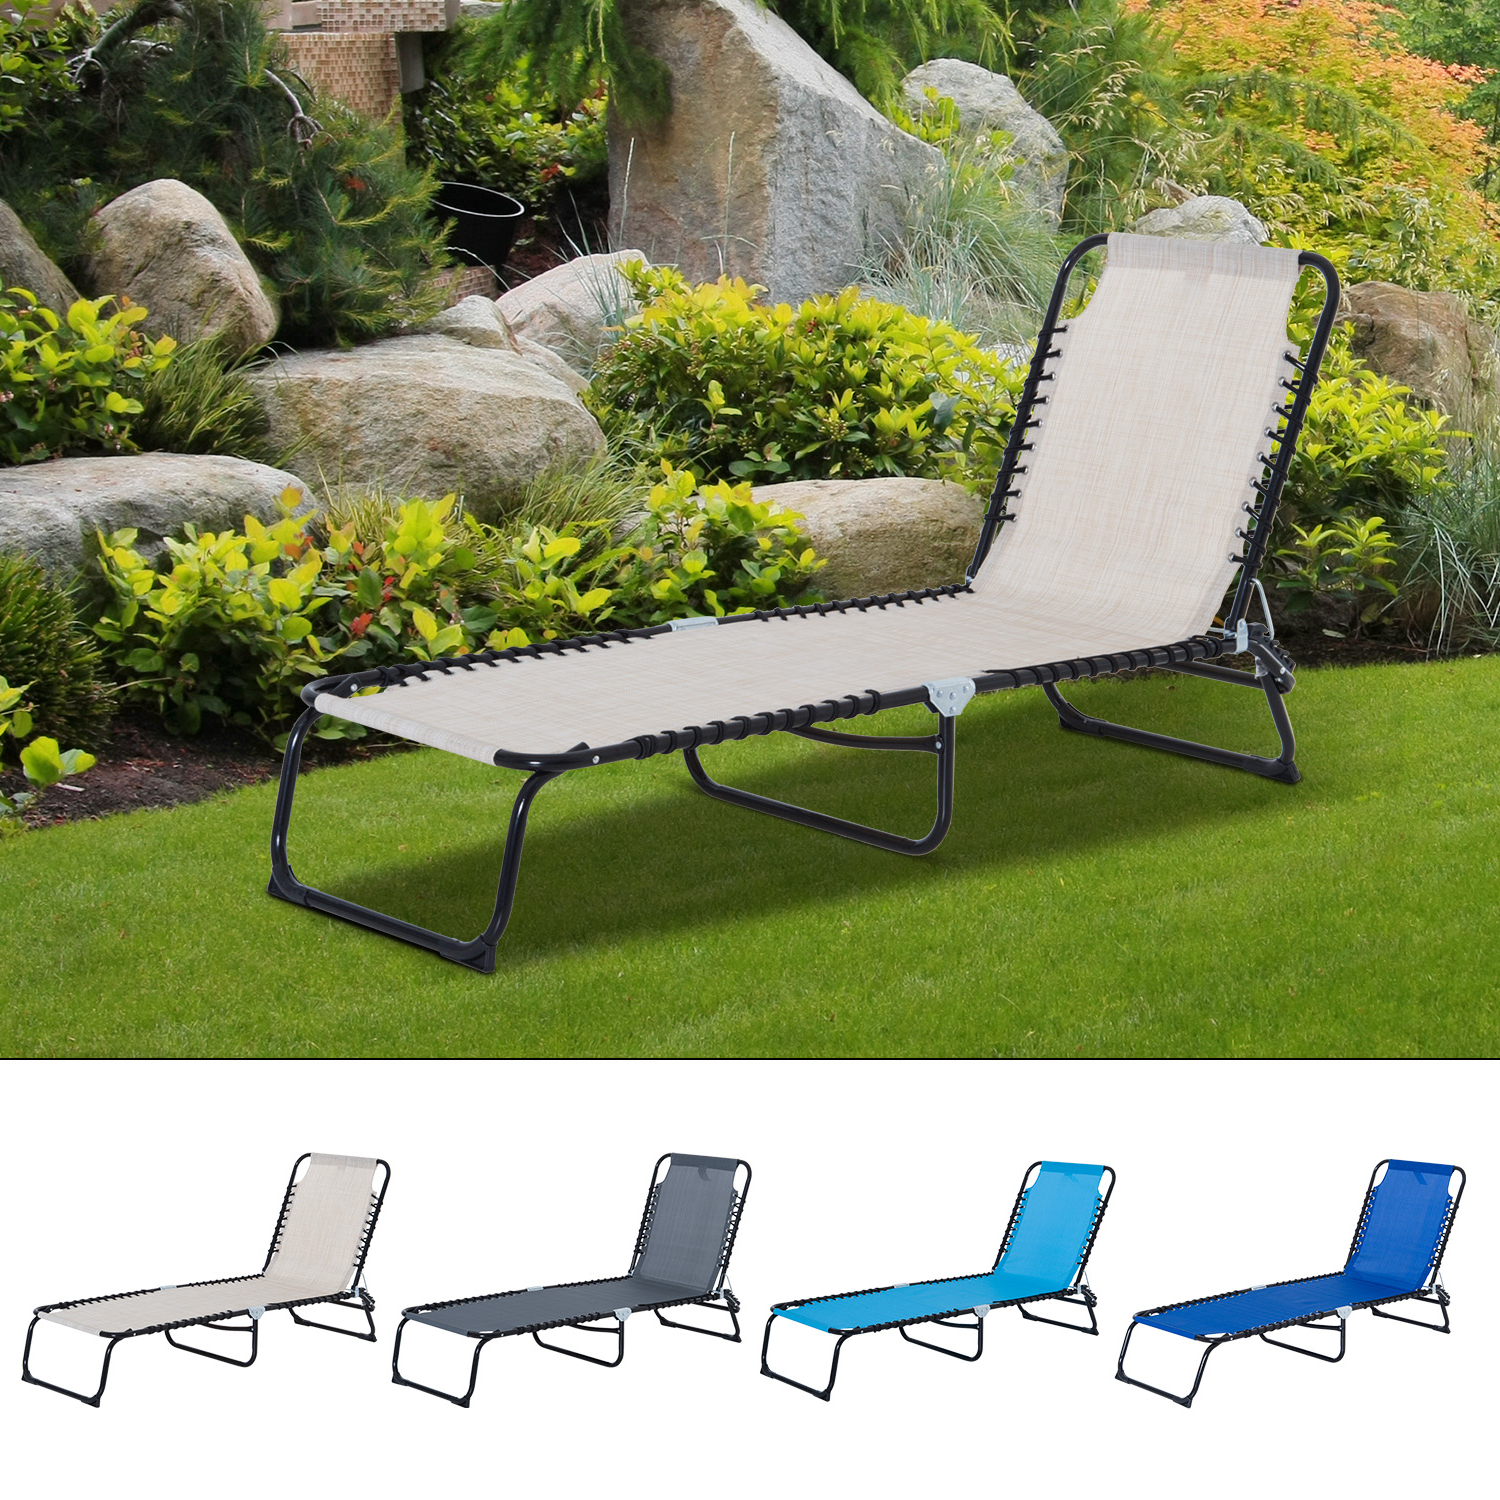 Most Up To Date Details About 3 Position Portable Reclining Beach Chaise Lounge Adjustable Sleeping Bed Inside 3 Position Portable Folding Reclining Beach Chaise Lounges (Gallery 4 of 25)